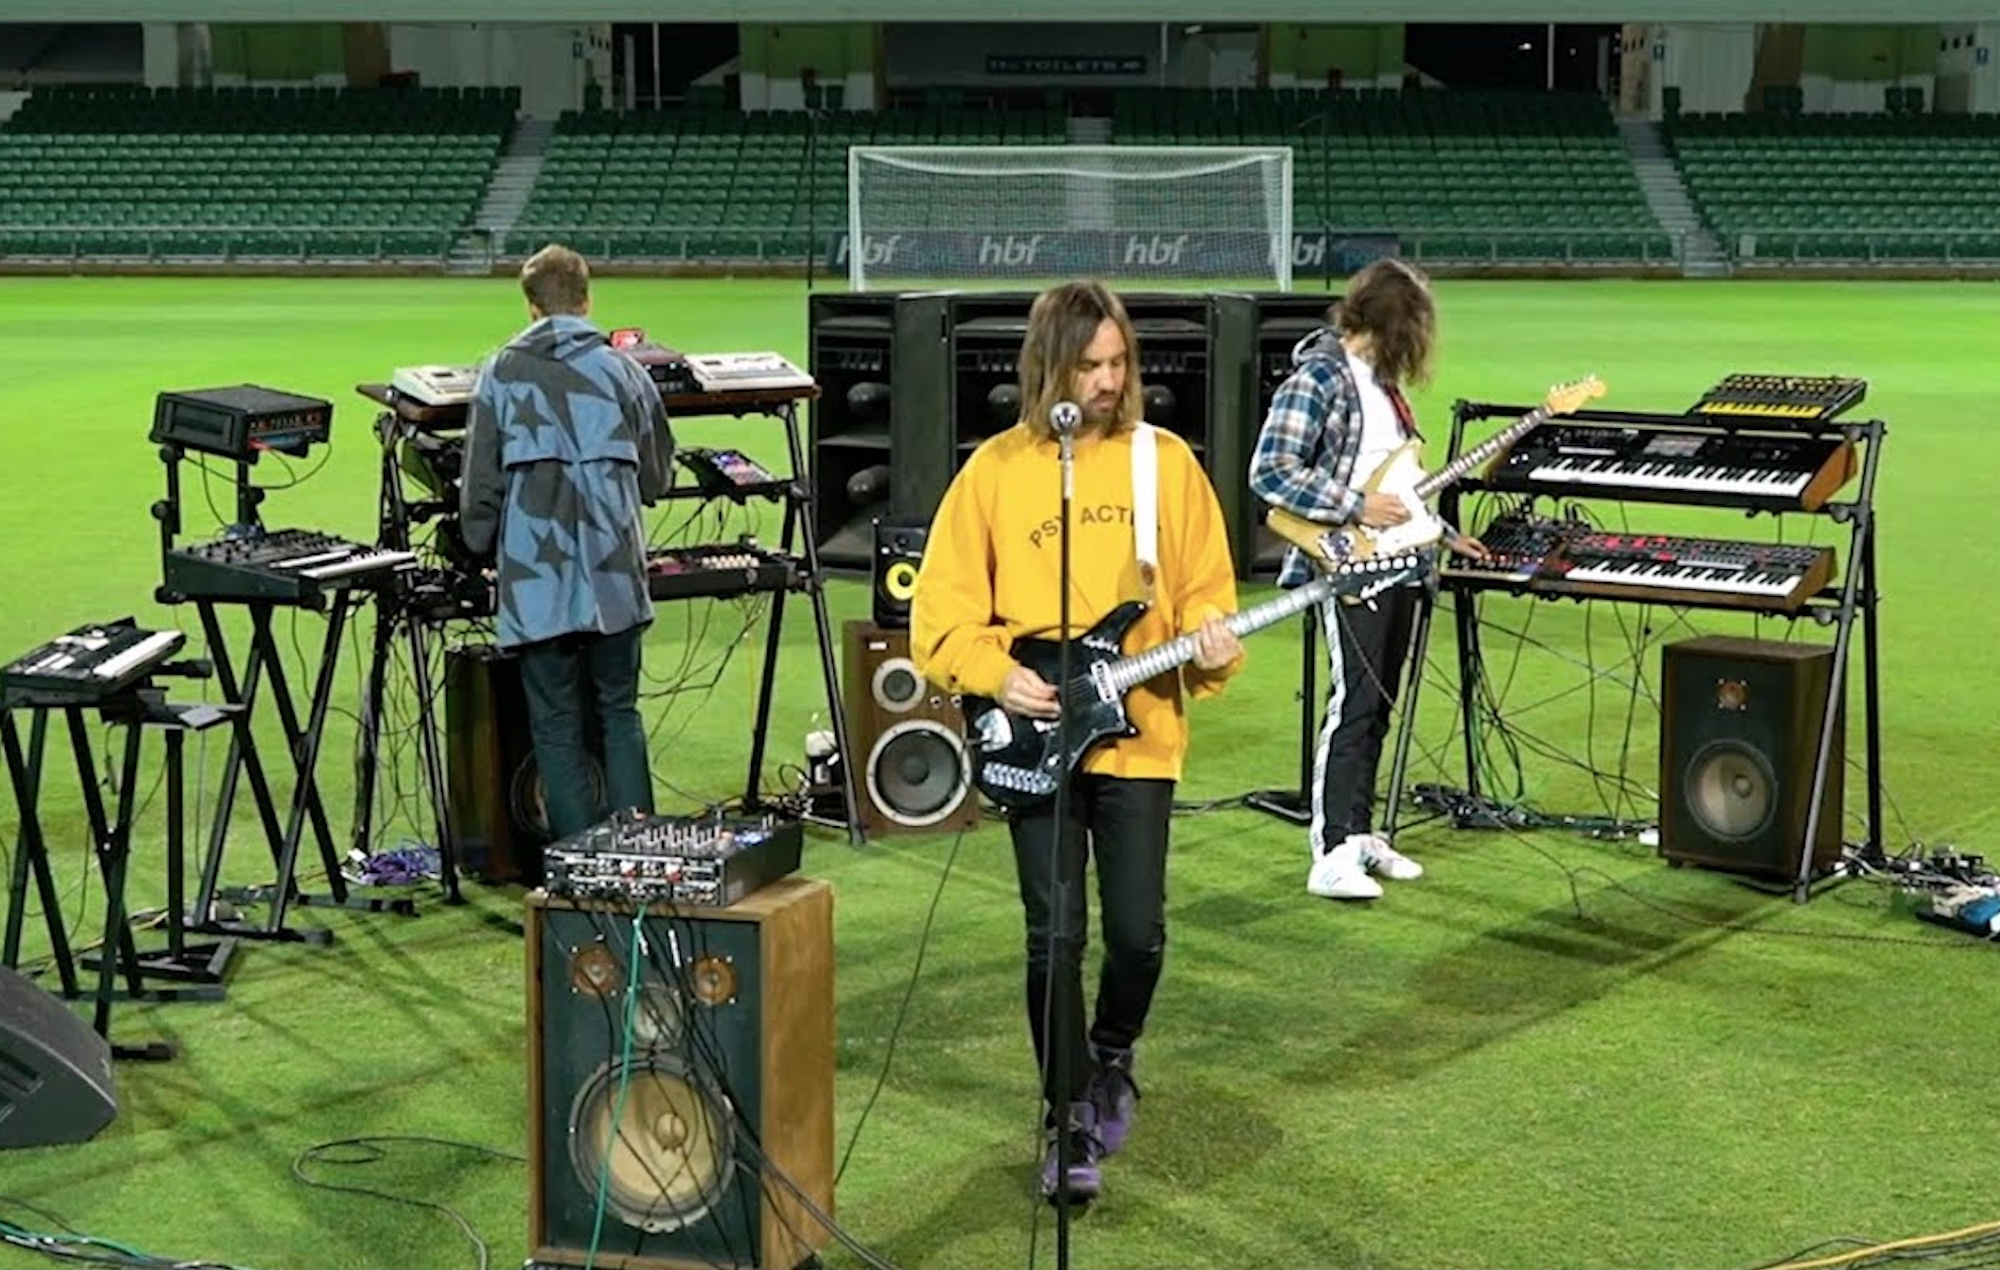 Watch Tame Impala perform 'Elephant' and 'Is It True' in an empty stadium |  NME